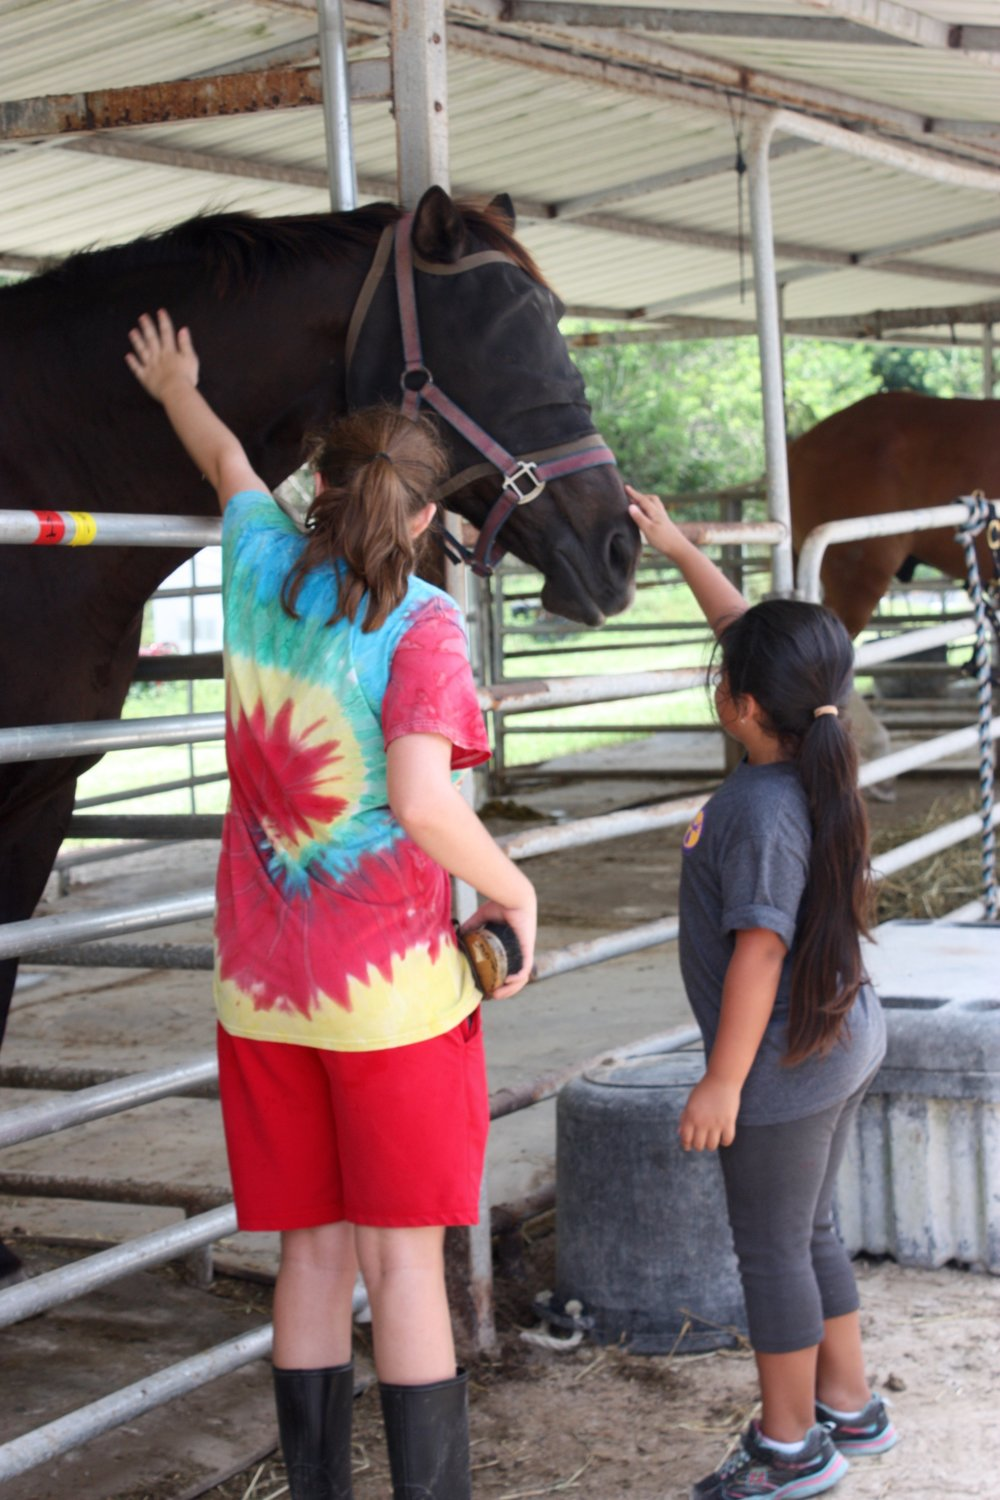 Purple Moose Camp goes to F.R.I.E.N.D.S. Horse Sanctuary Summer 2015